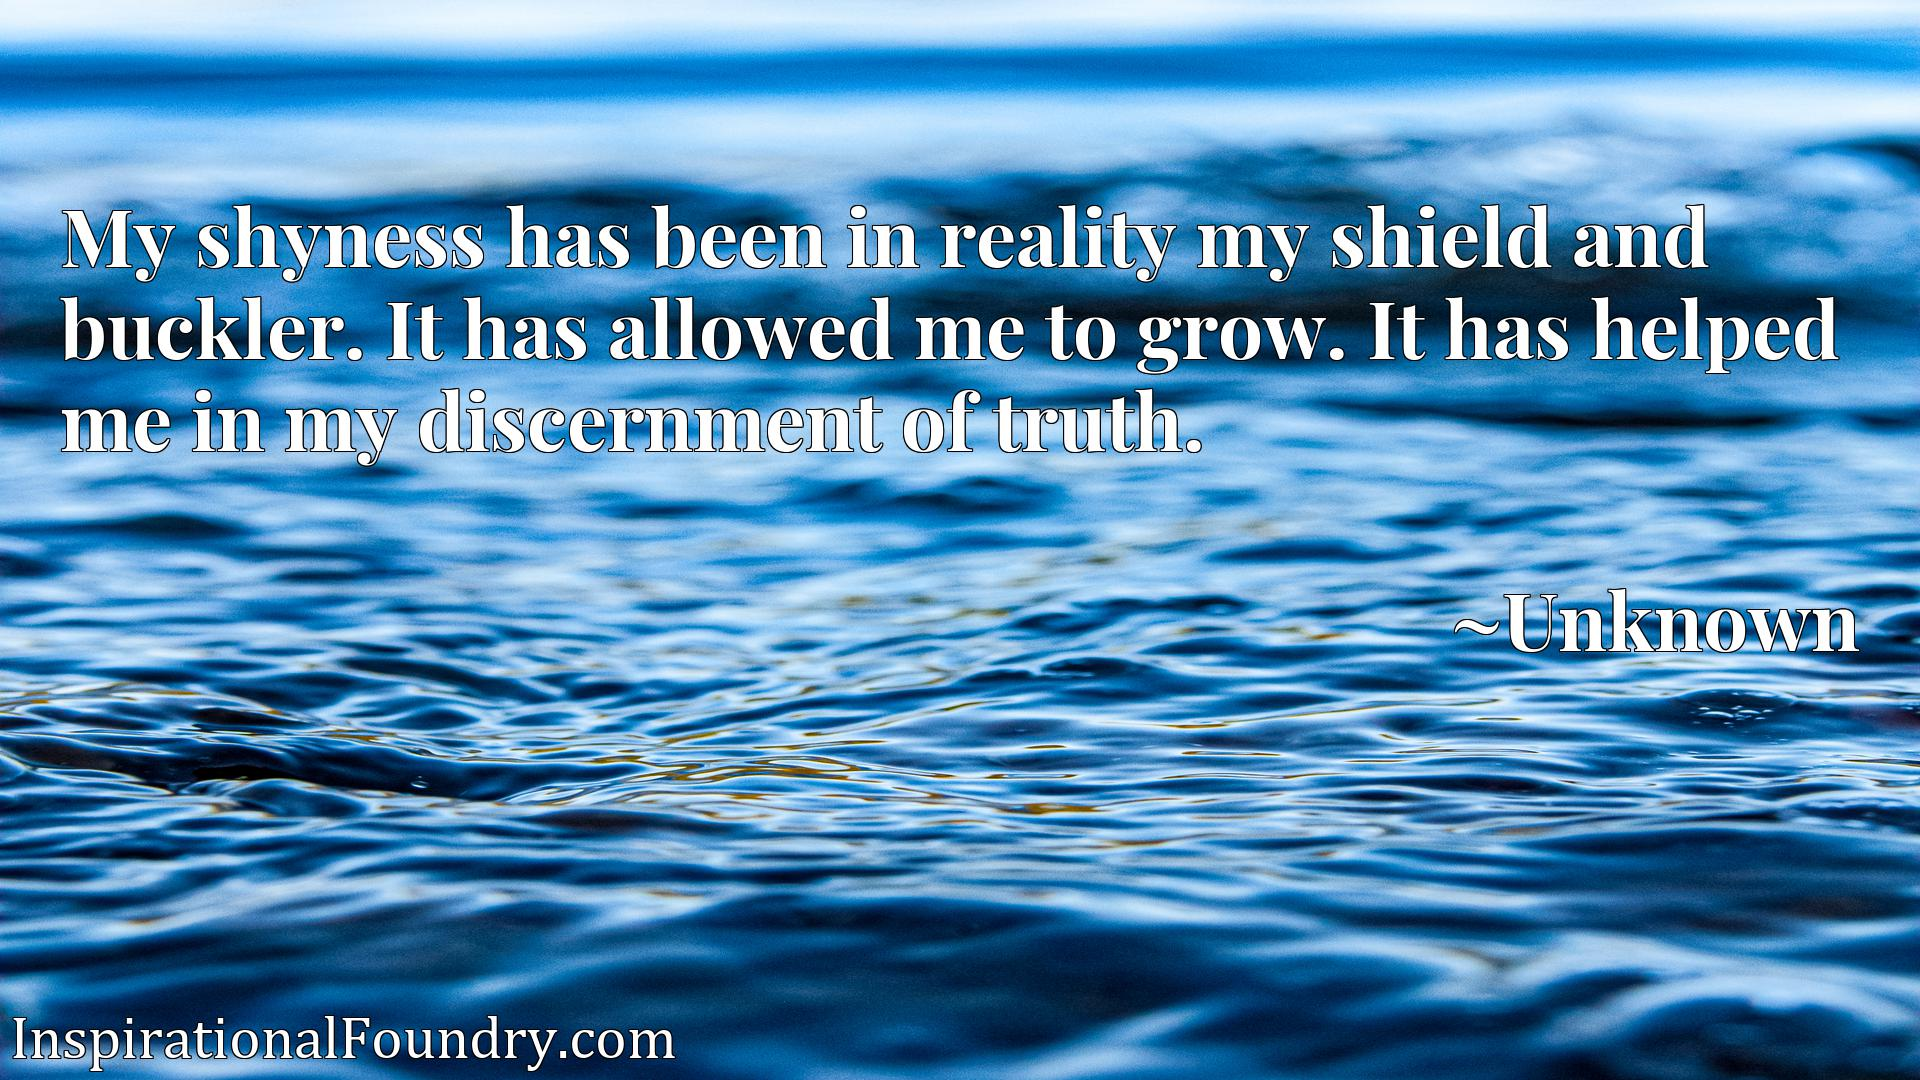 Quote Picture :My shyness has been in reality my shield and buckler. It has allowed me to grow. It has helped me in my discernment of truth.